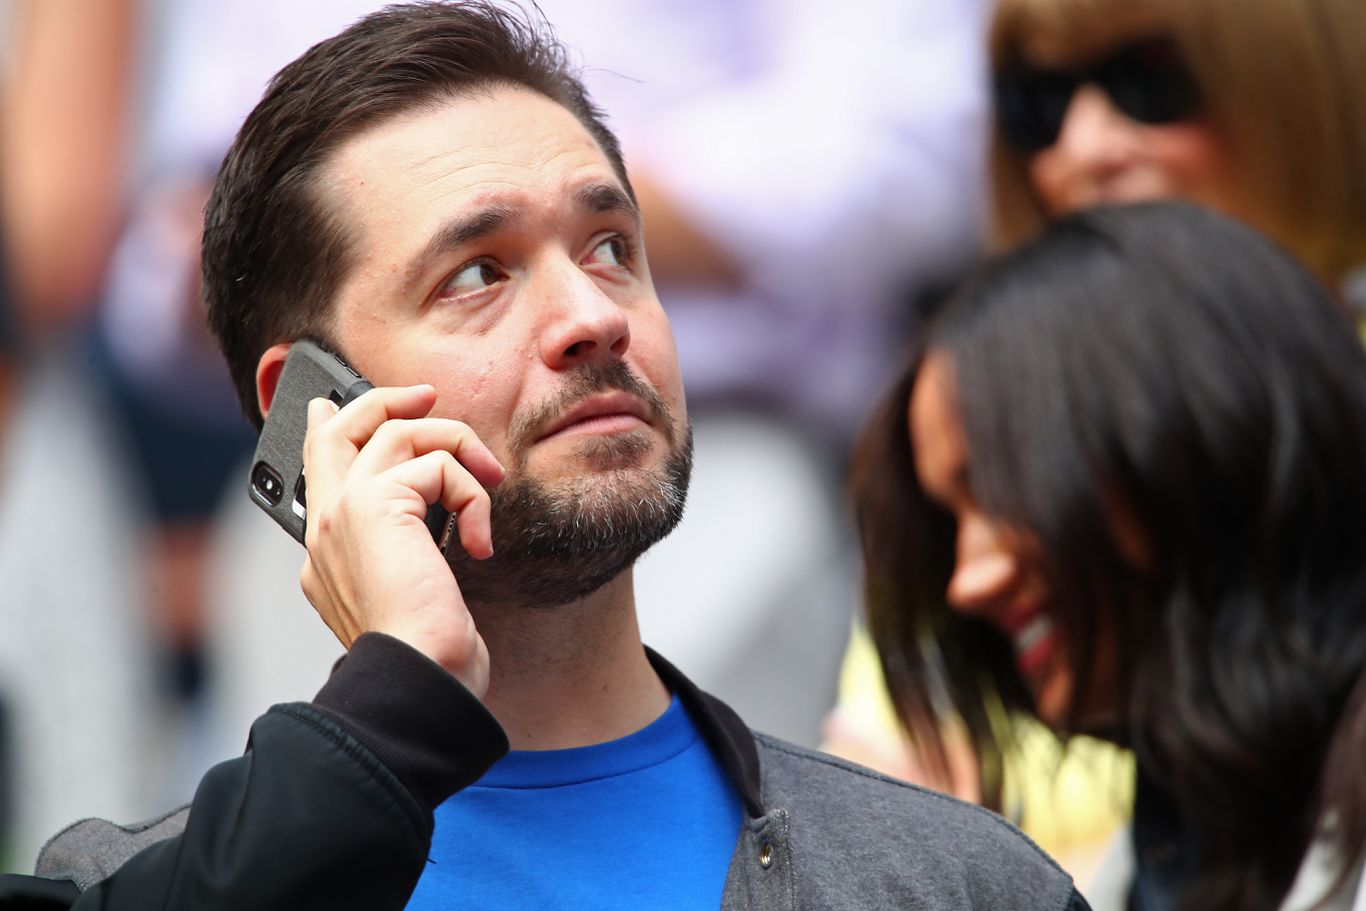 Scoop: Alexis Ohanian leaves VC agency Initialized thumbnail